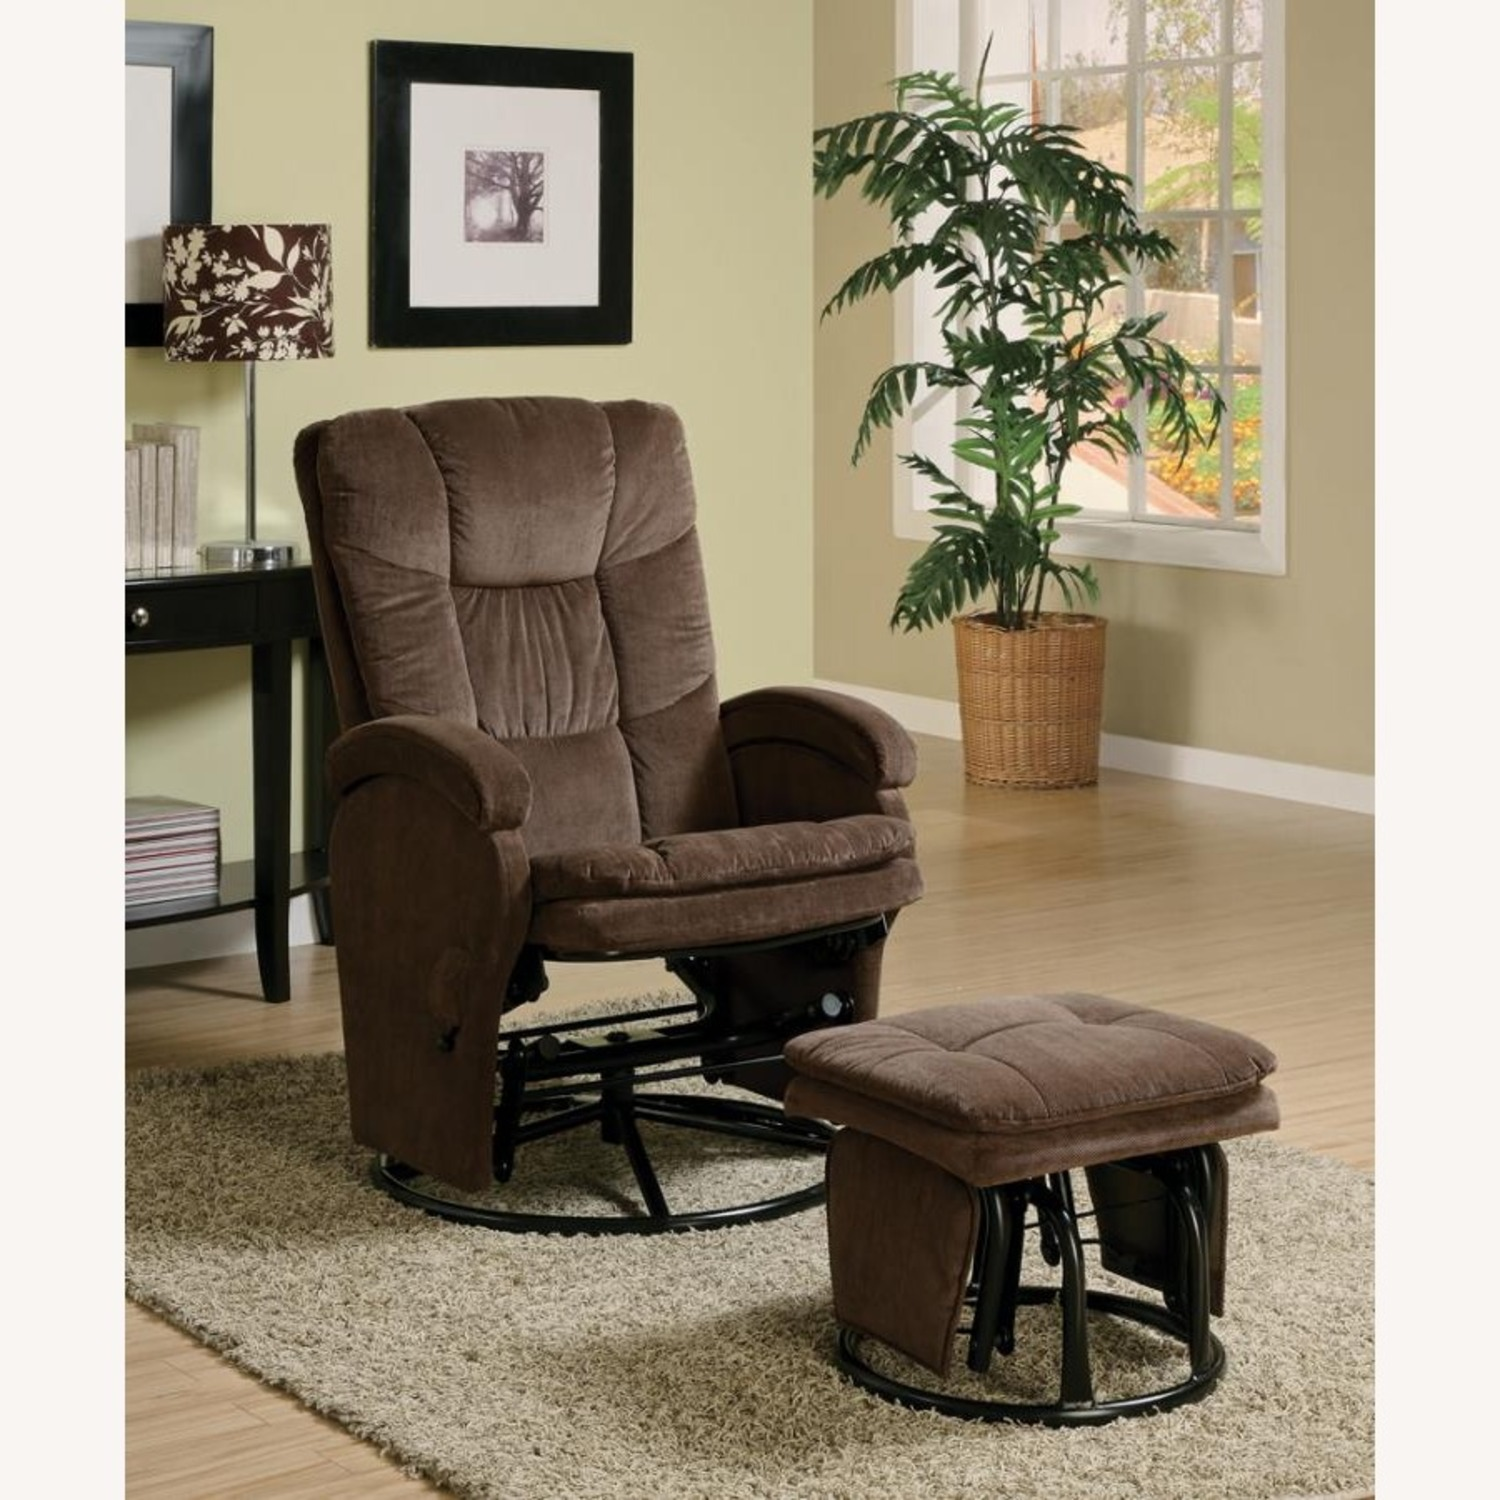 Glider W/ Ottoman In Chocolate Chenille Upholstery - image-3